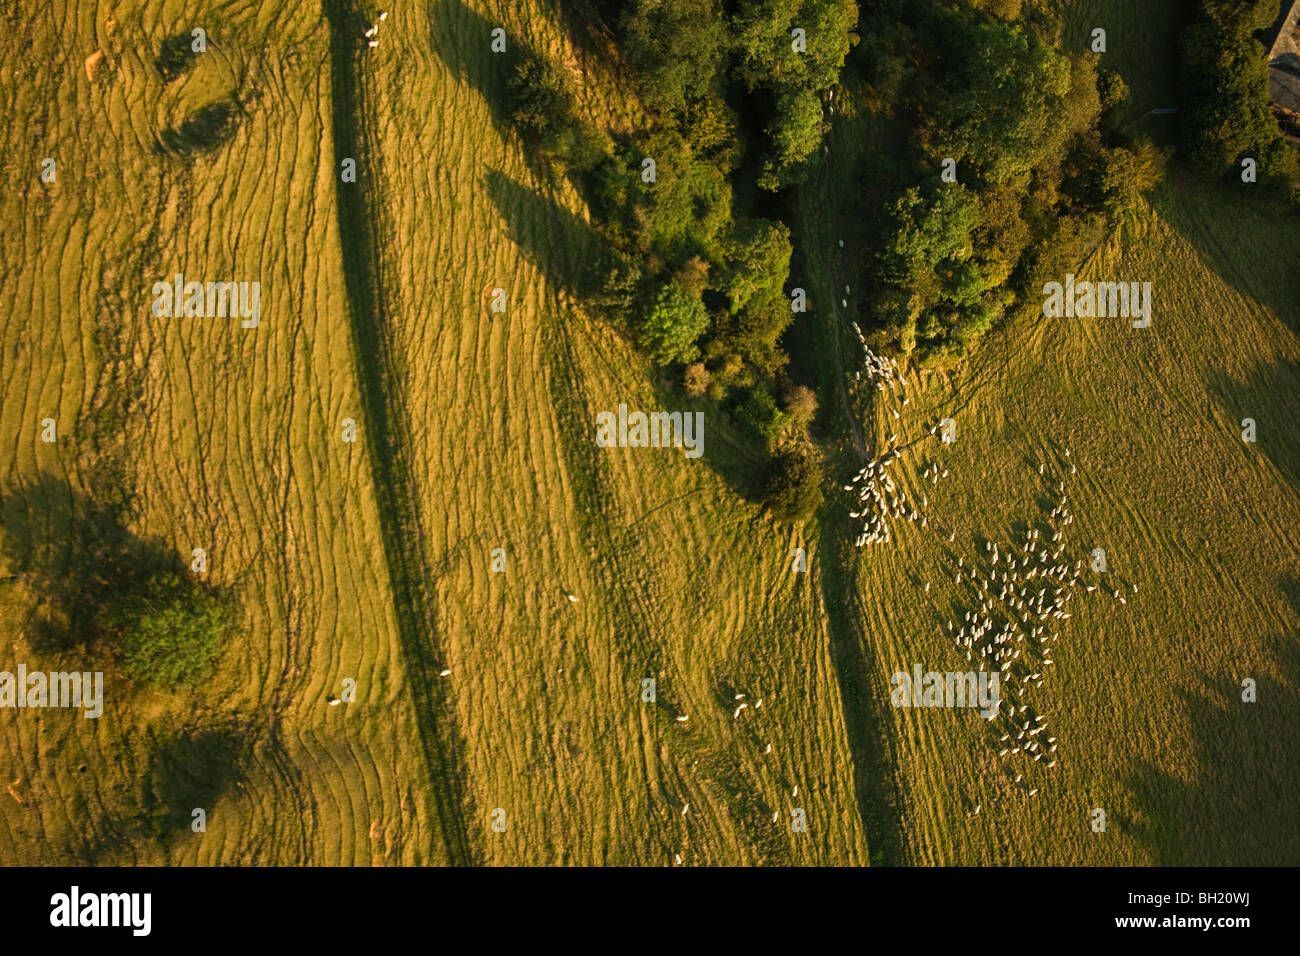 Aerial view of sheep on farming land - Stock Image